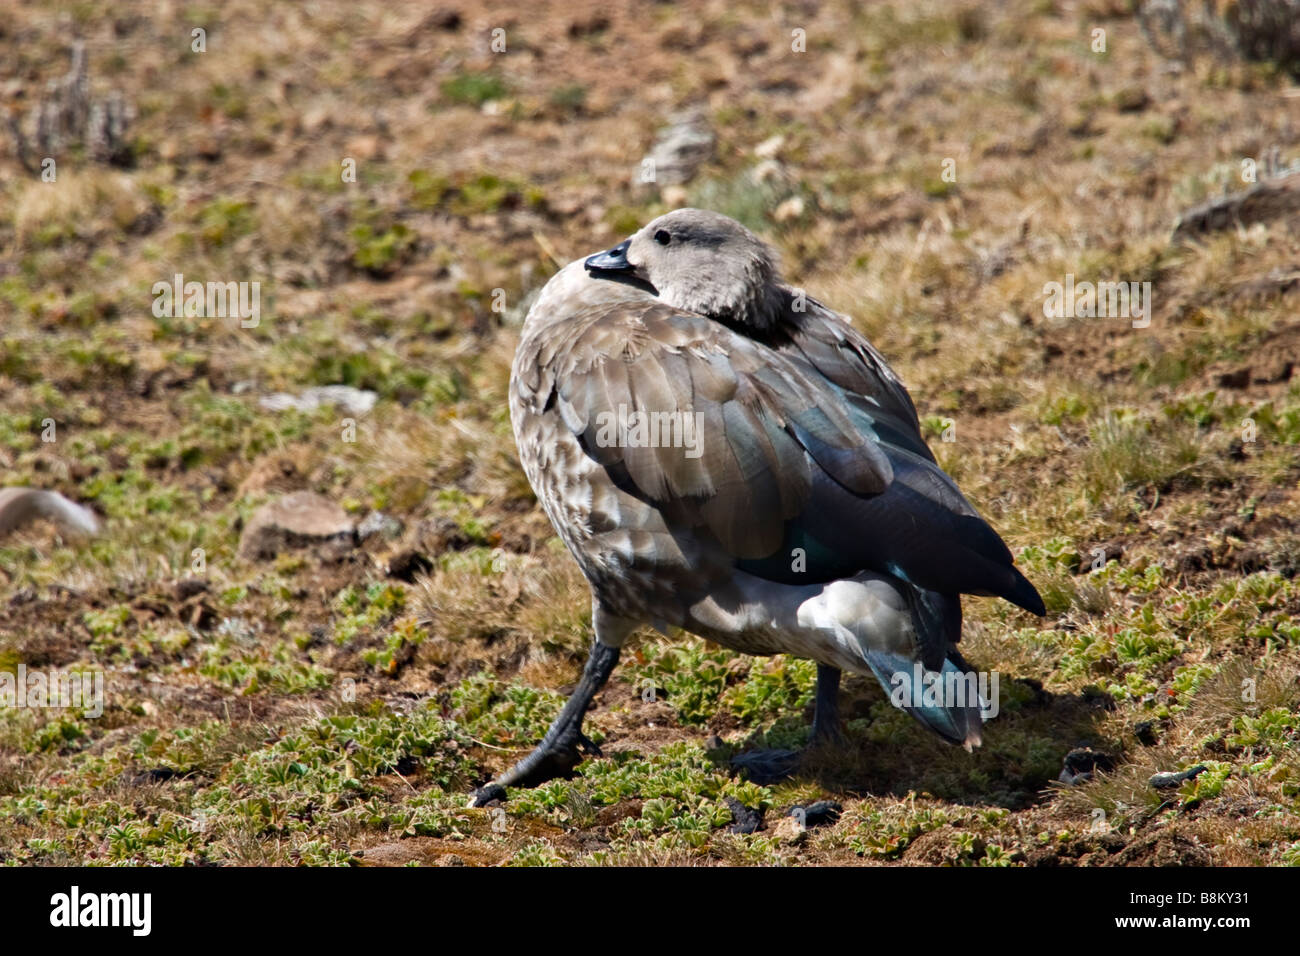 Blue-winged Goose (Cyanochen cyanopterus) endemic to Ethiopia, Africa - Stock Image